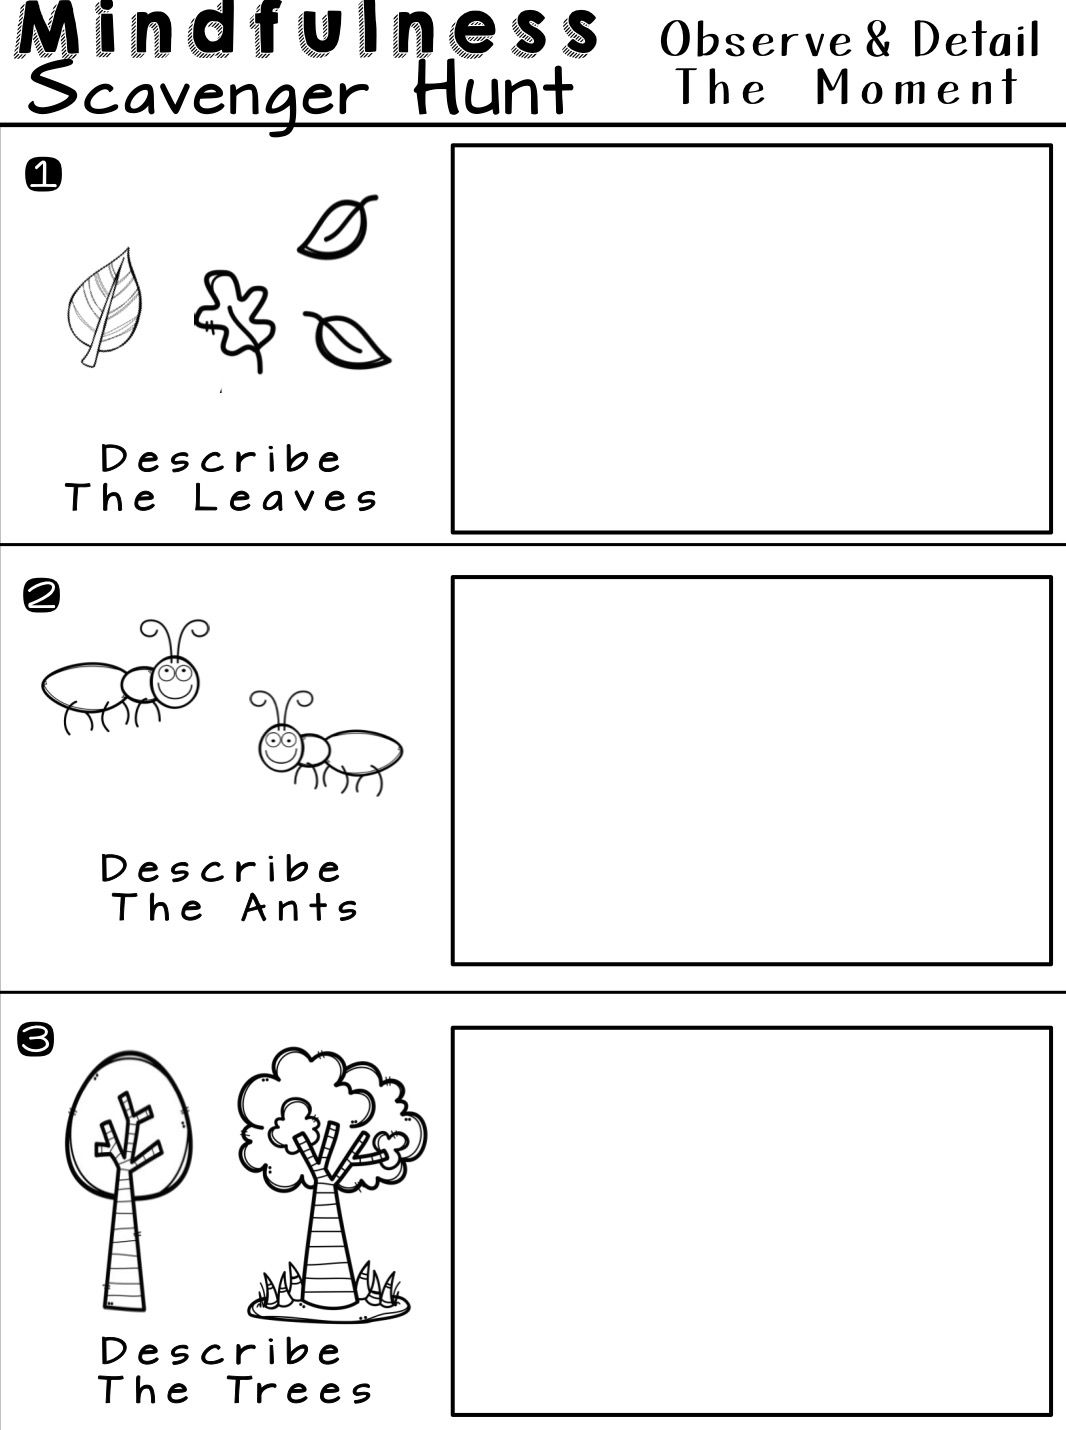 Mindfulness Scavenger Hunt Worksheets For Relaxation And Calm